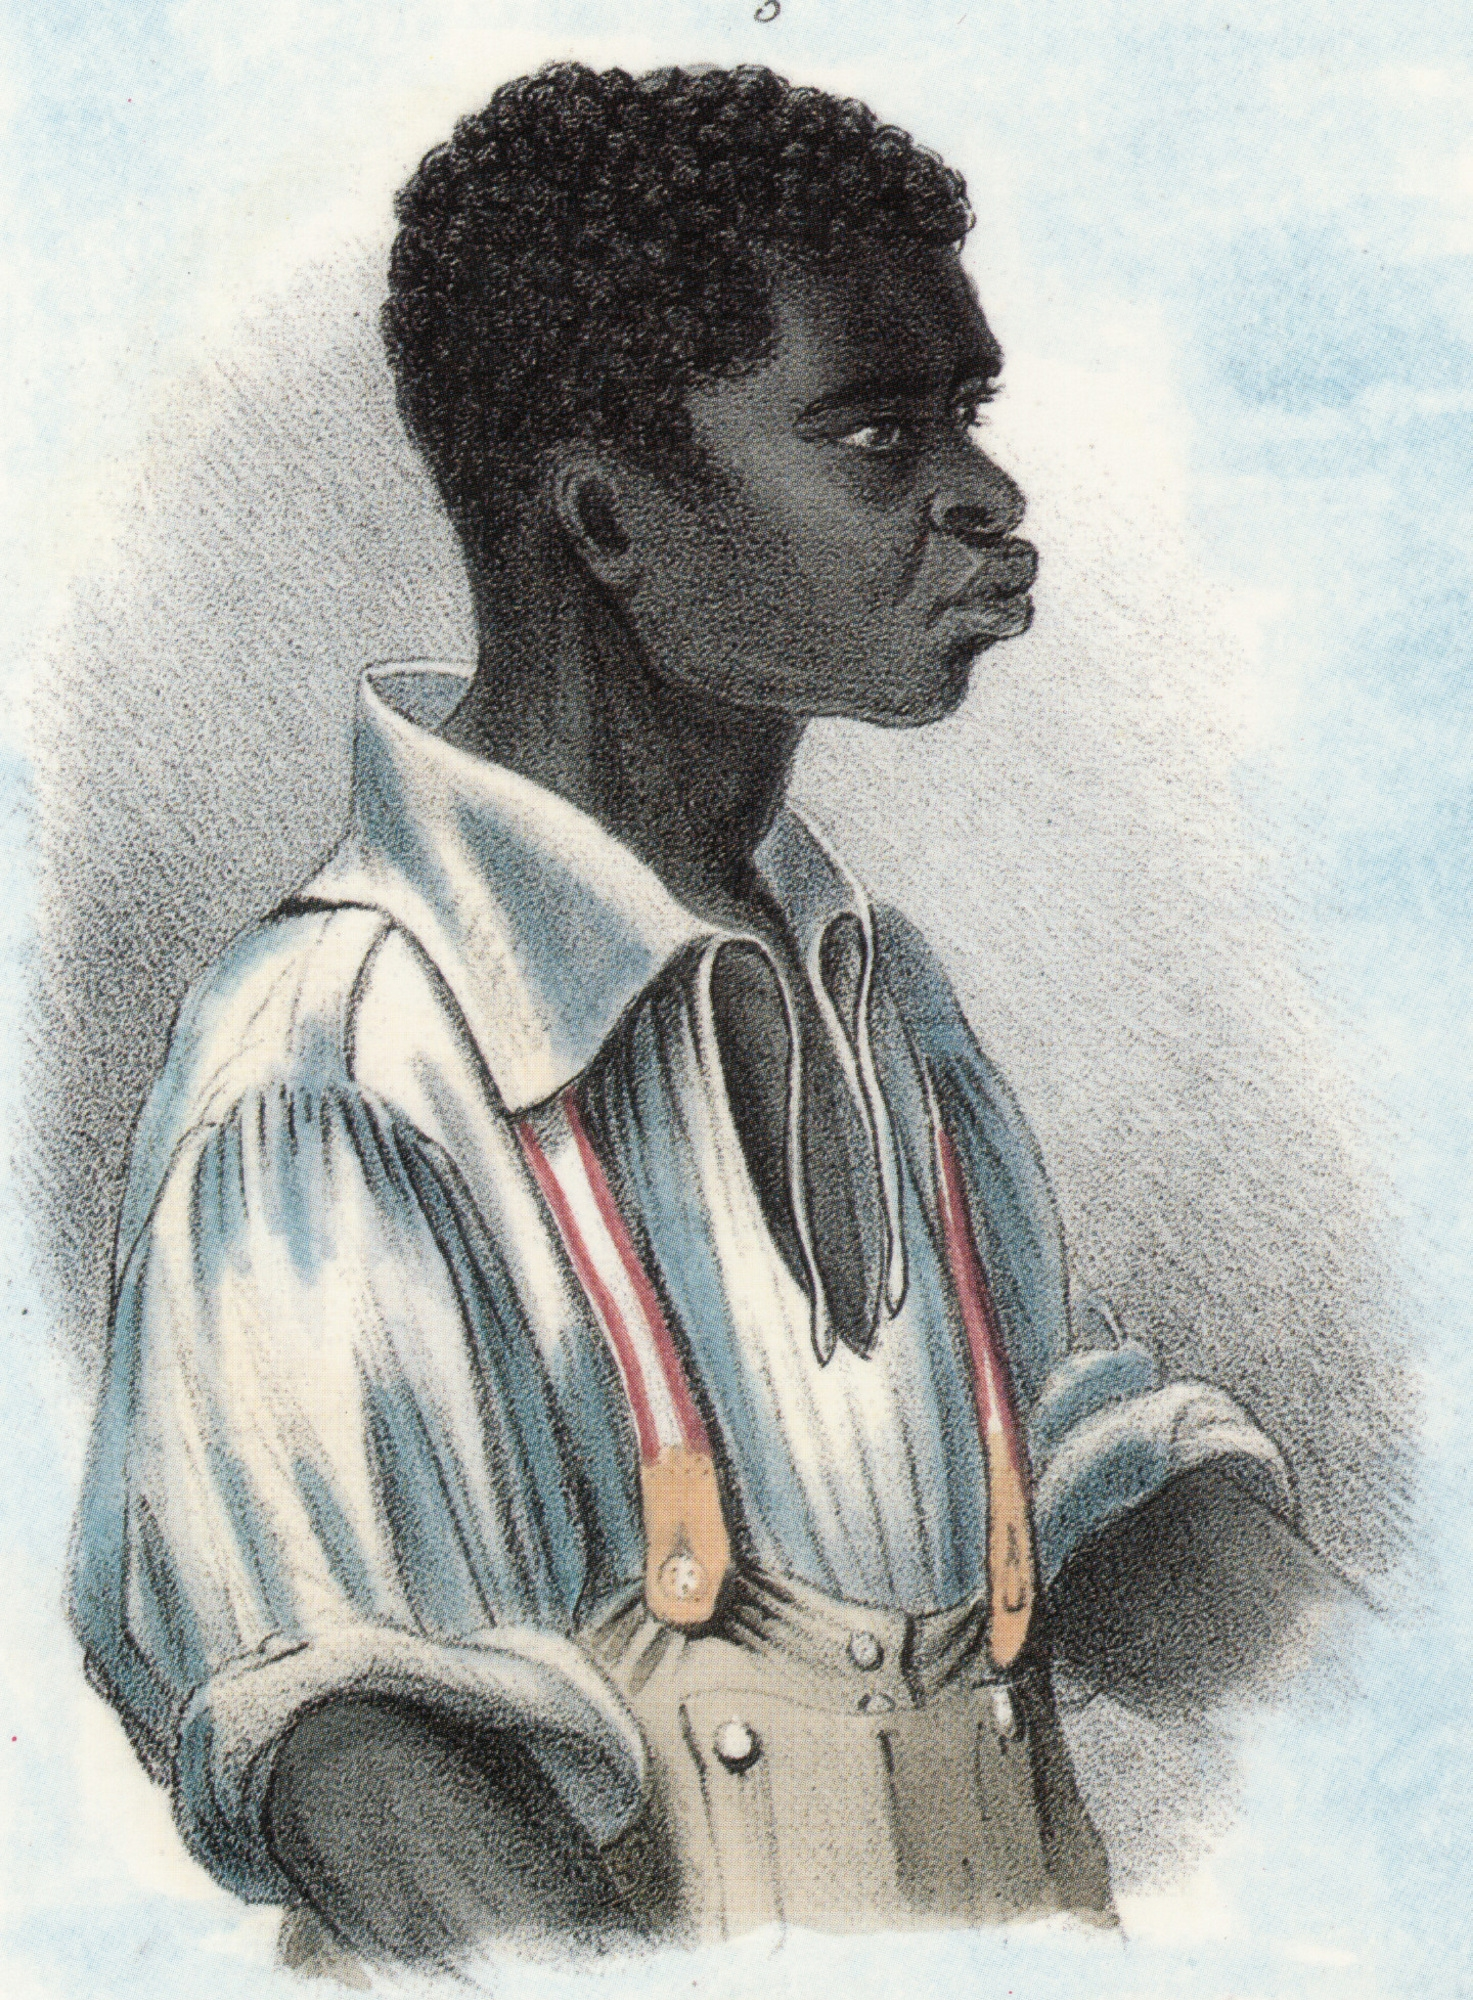 Illustration of man in white open-necked shirt.